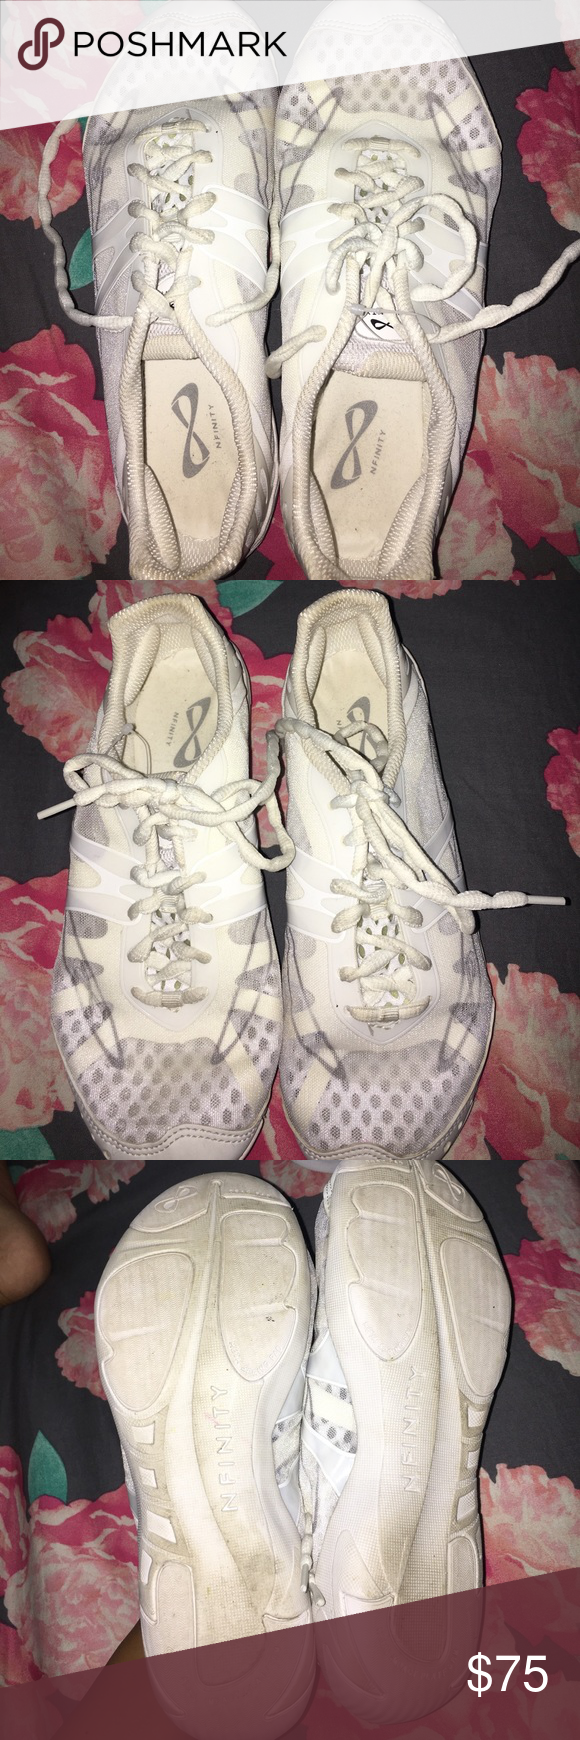 Nfinity Vengeance Cheer Shoes Size 8 5 Cheer Shoes Shoes Nfinity